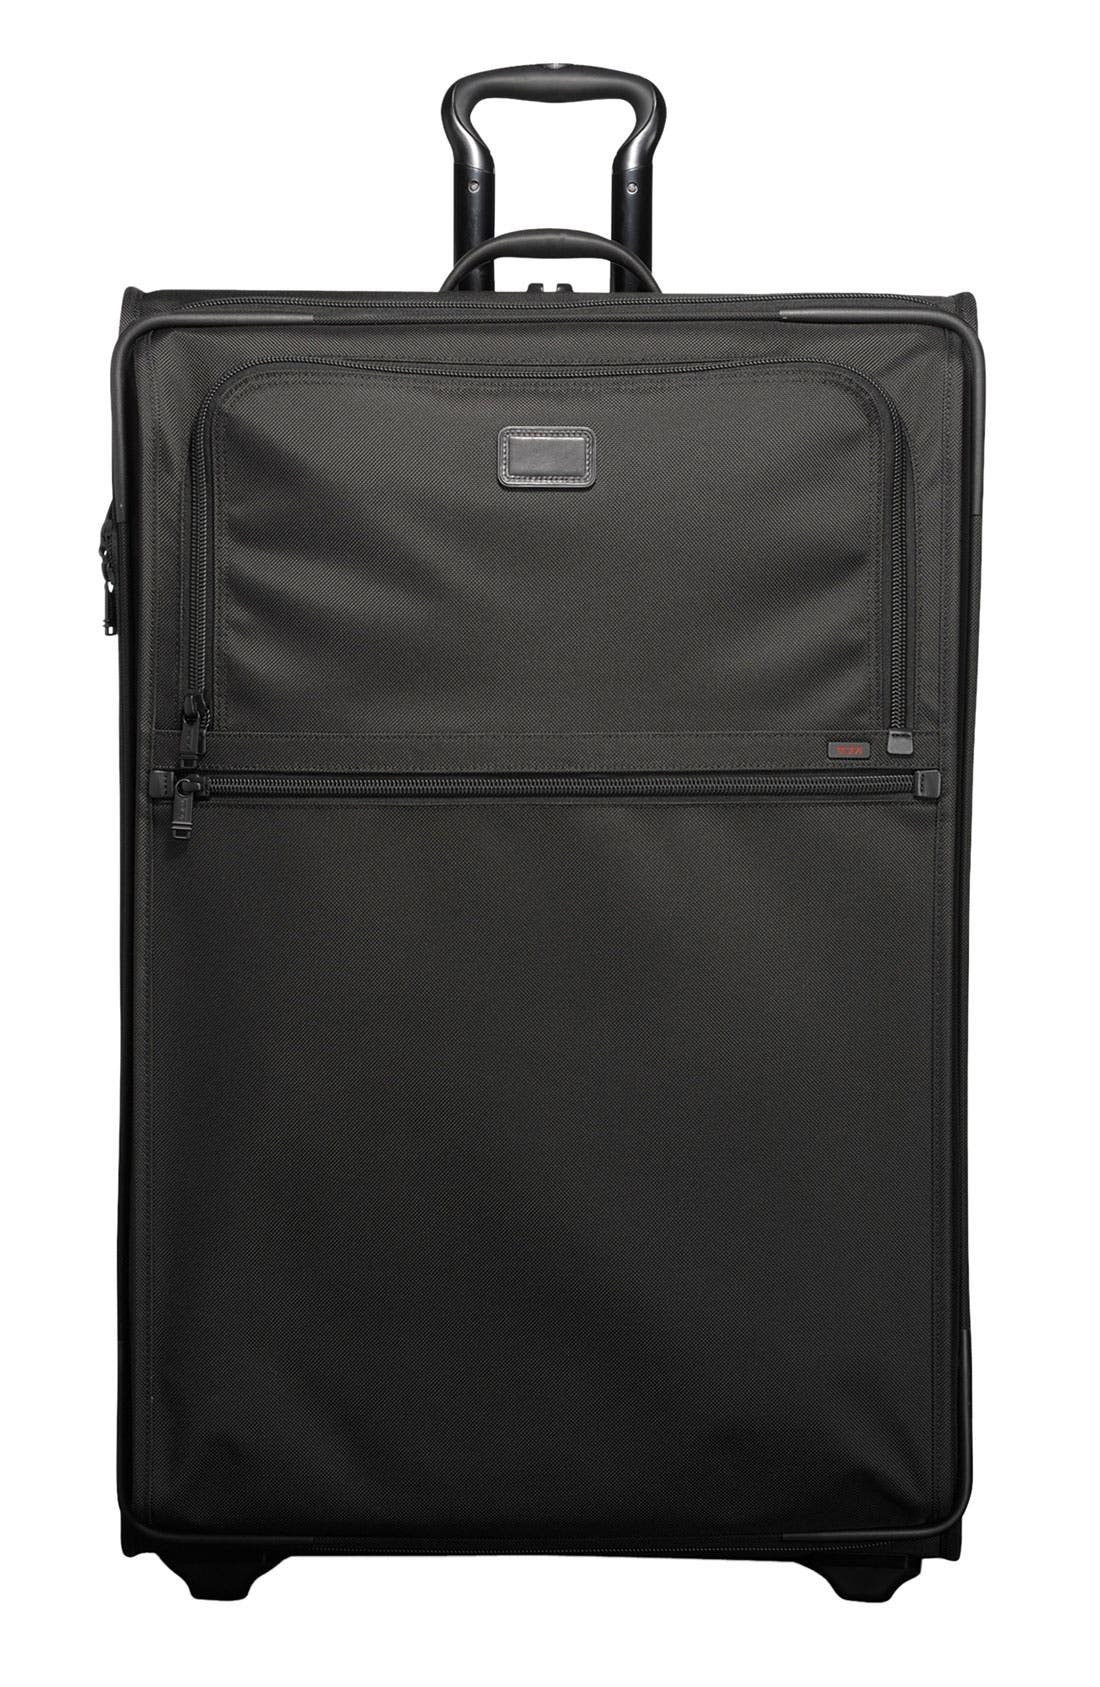 Alternate Image 1 Selected - Tumi 'Alpha' Wheeled Expandable Woldwide Trip Bag